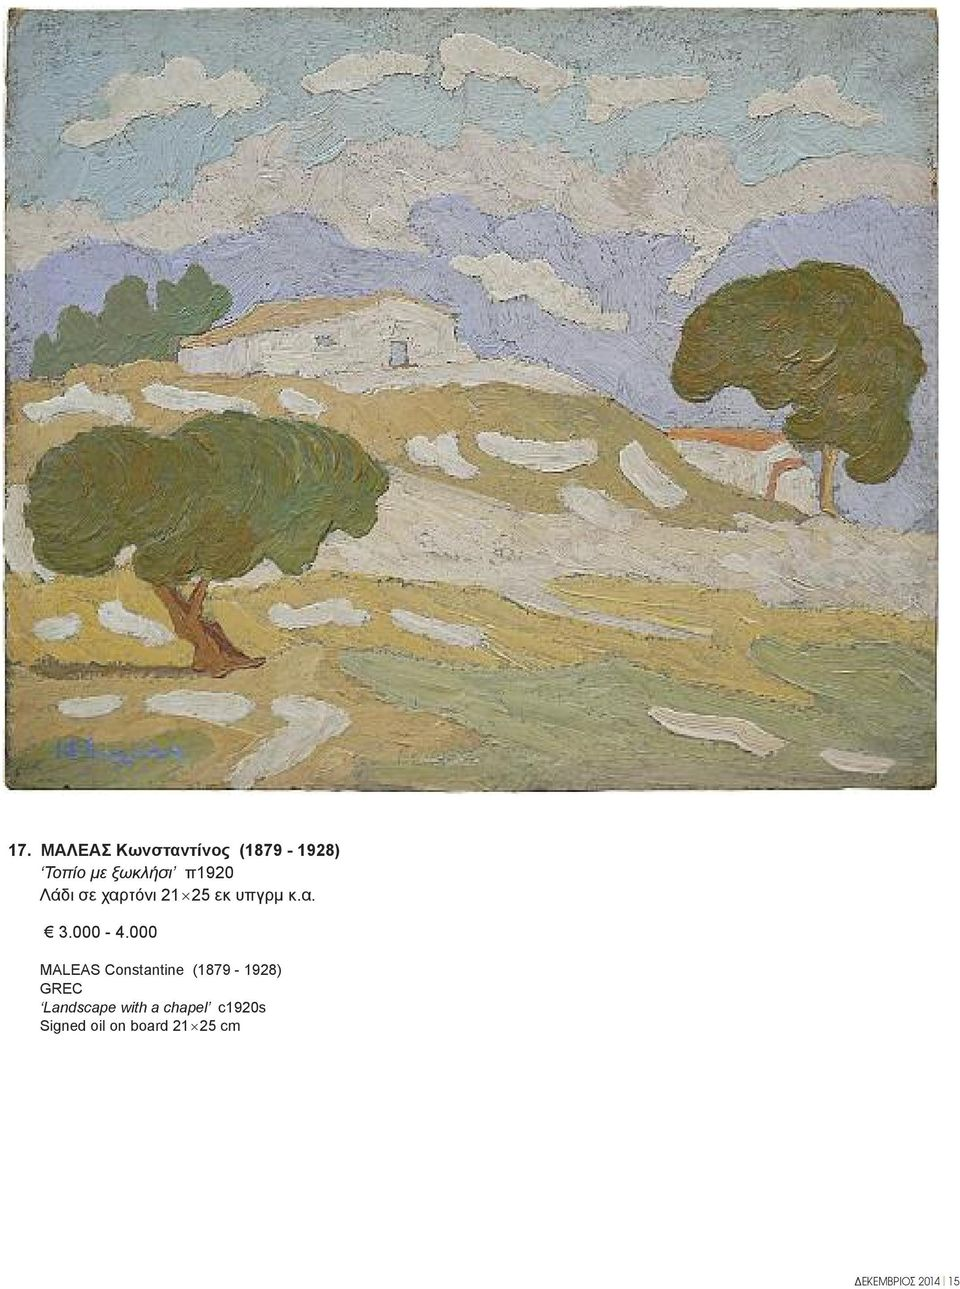 000 MALEAS Constantine (1879-1928) GREC Landscape with